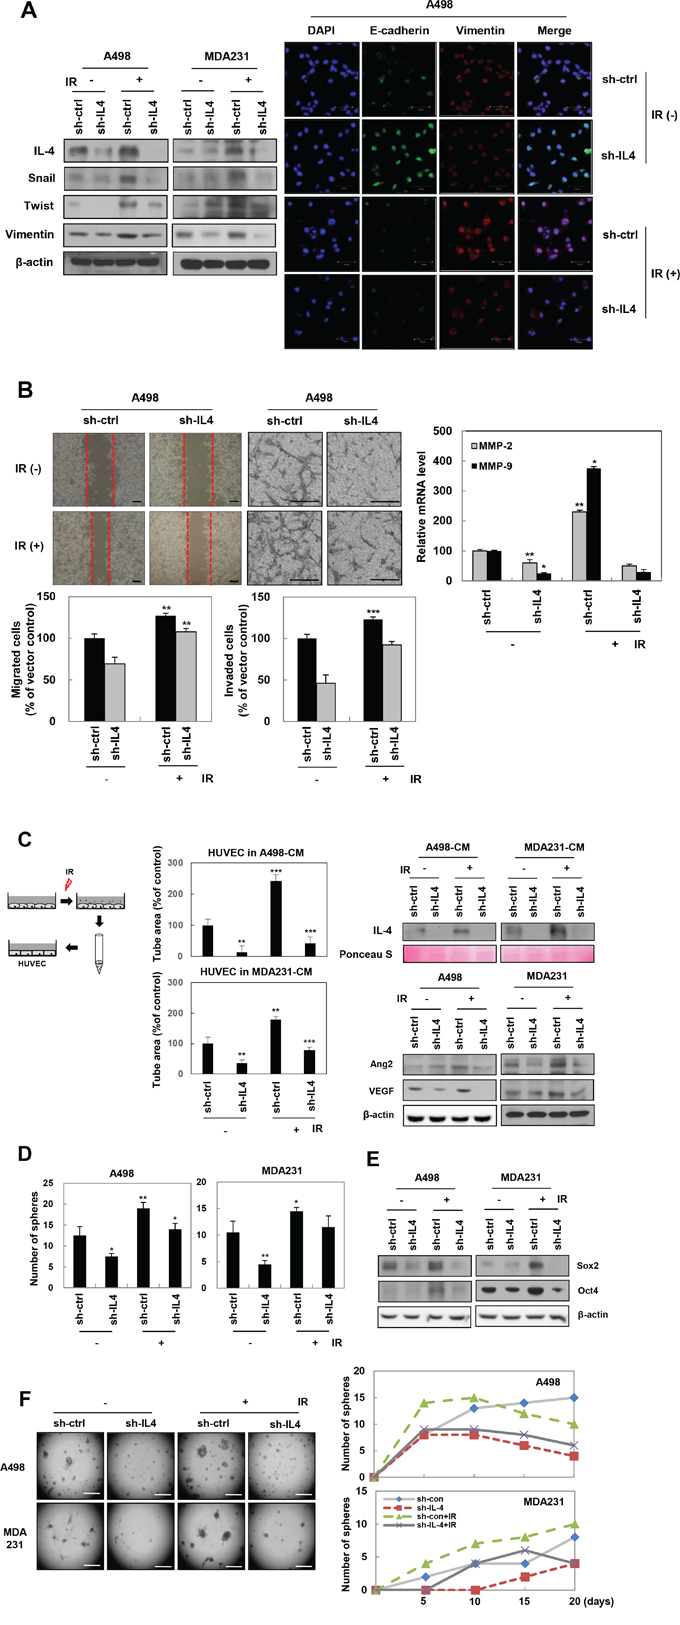 IL-4 is involved in IR-induced EMT, migration, invasion, angiogenesis, and stemness maintenance in human cancer cells.